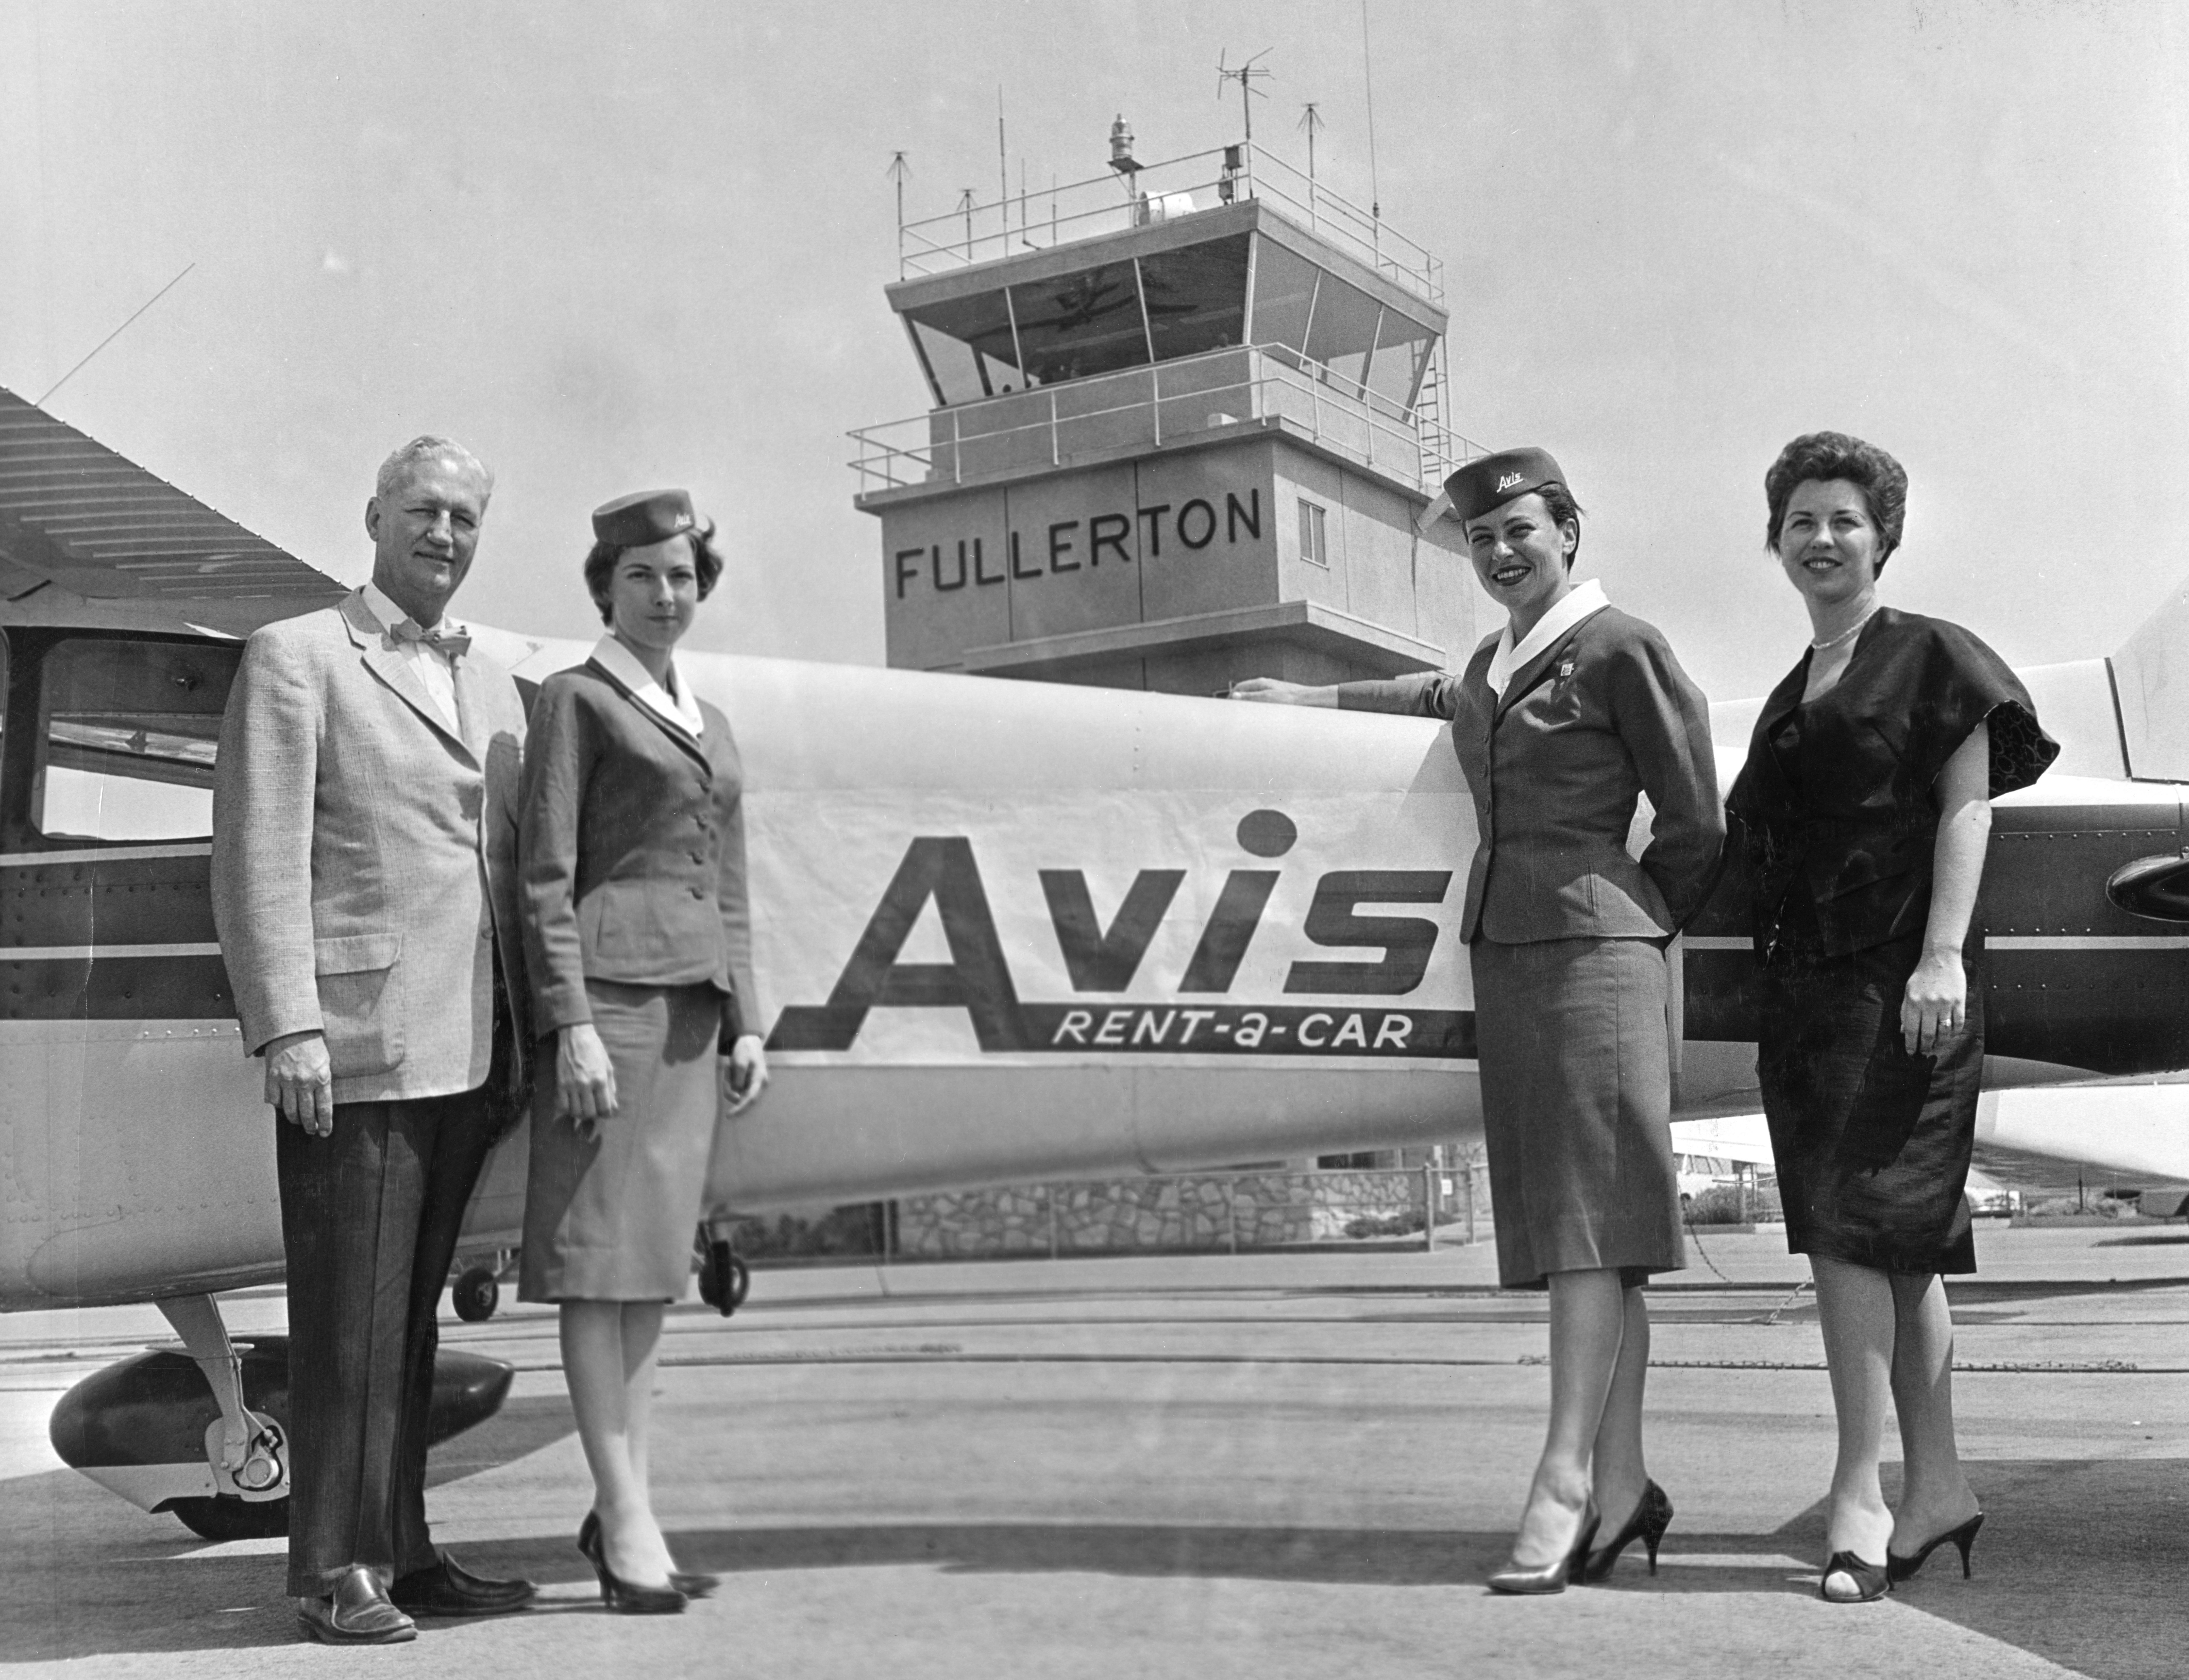 In 1958 the citys first avis rentacar opened at the